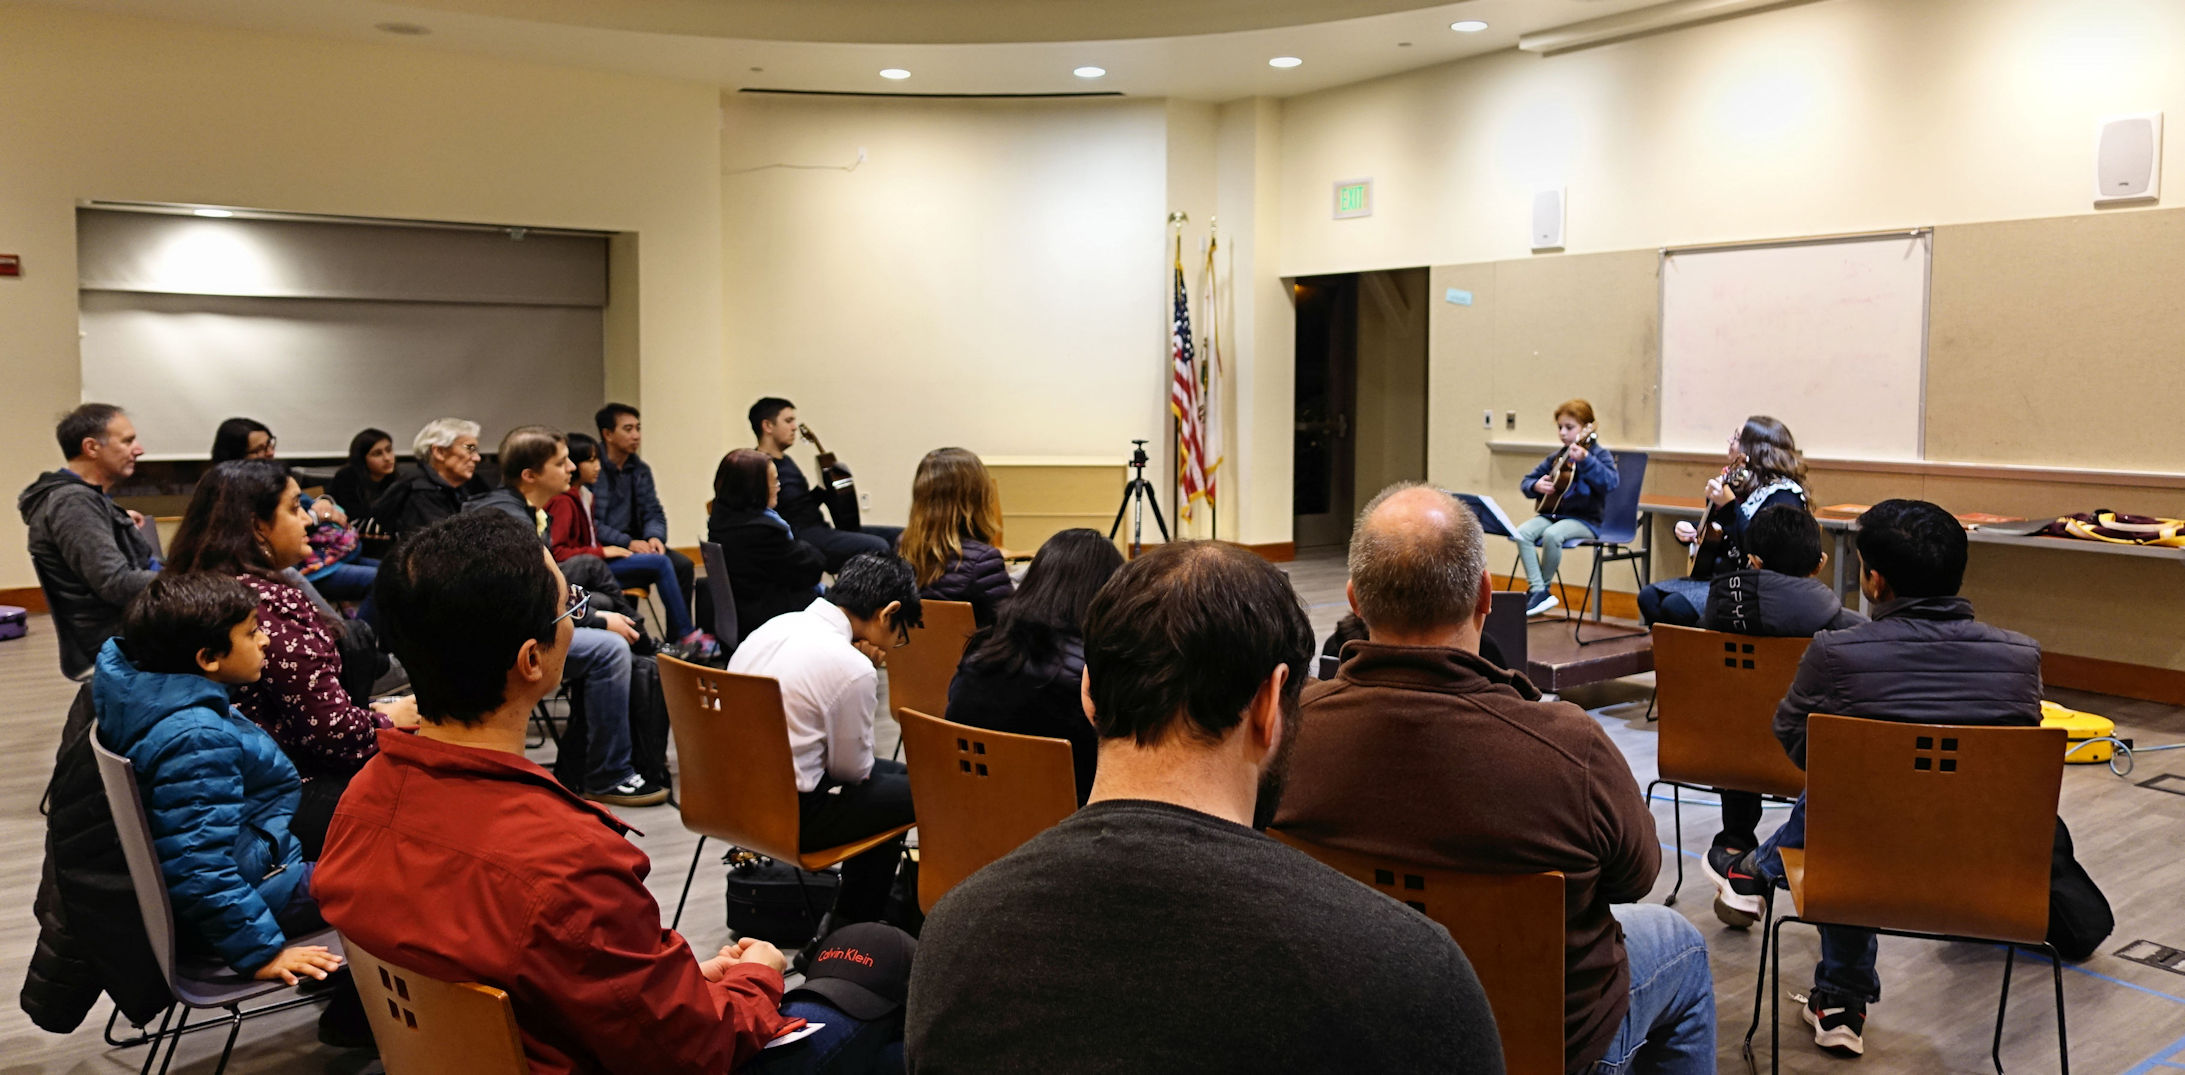 Open Mic night at Vineland branch library